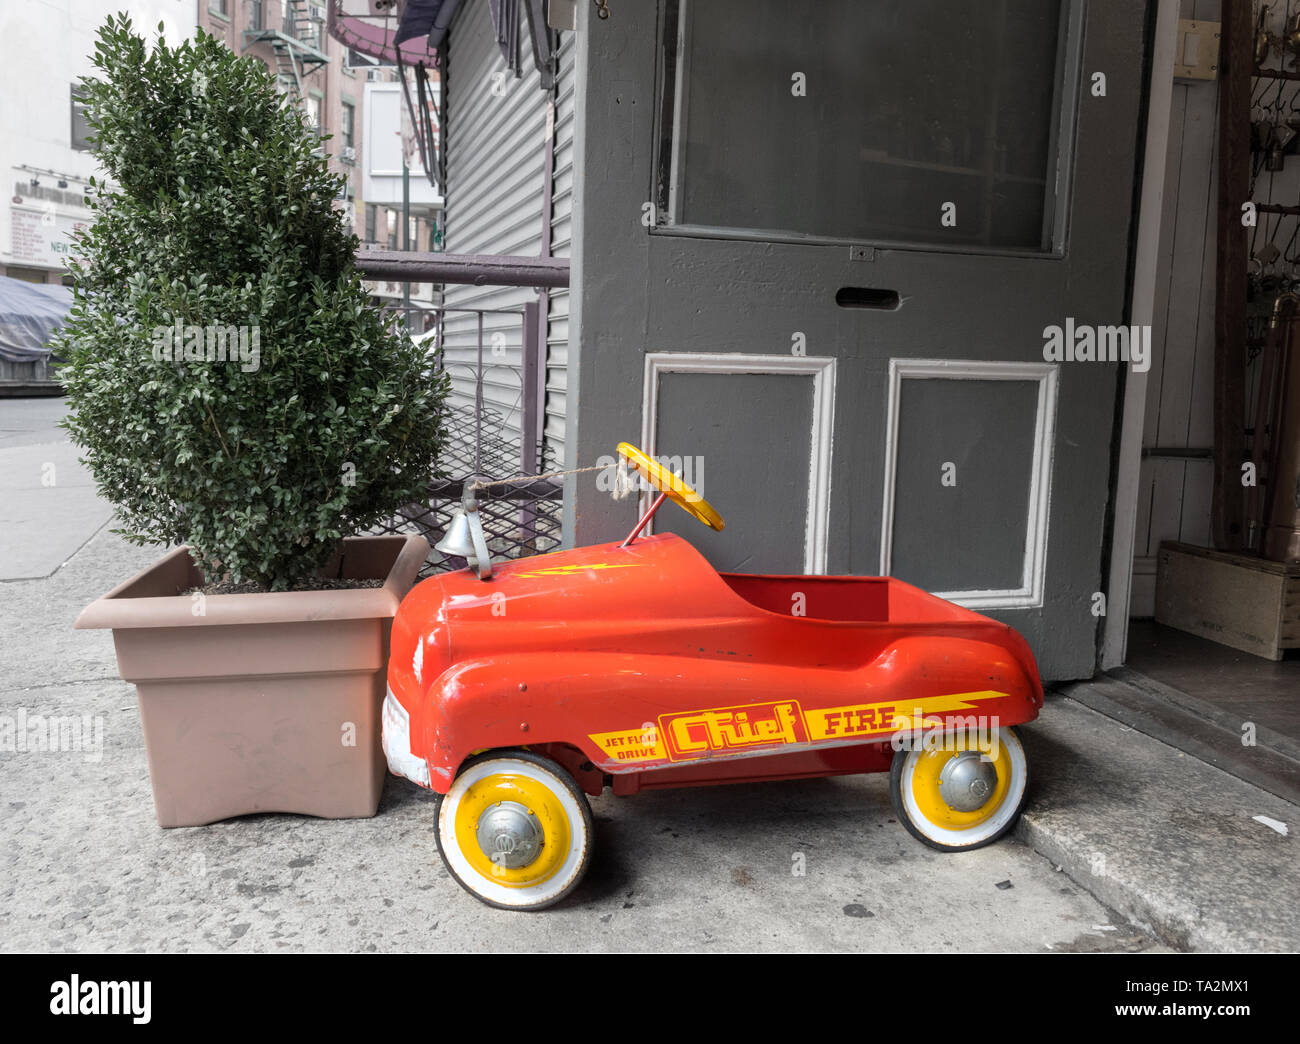 A bright red and yellow toy fire truck stands out againsta dreary grey concrete environment Stock Photo